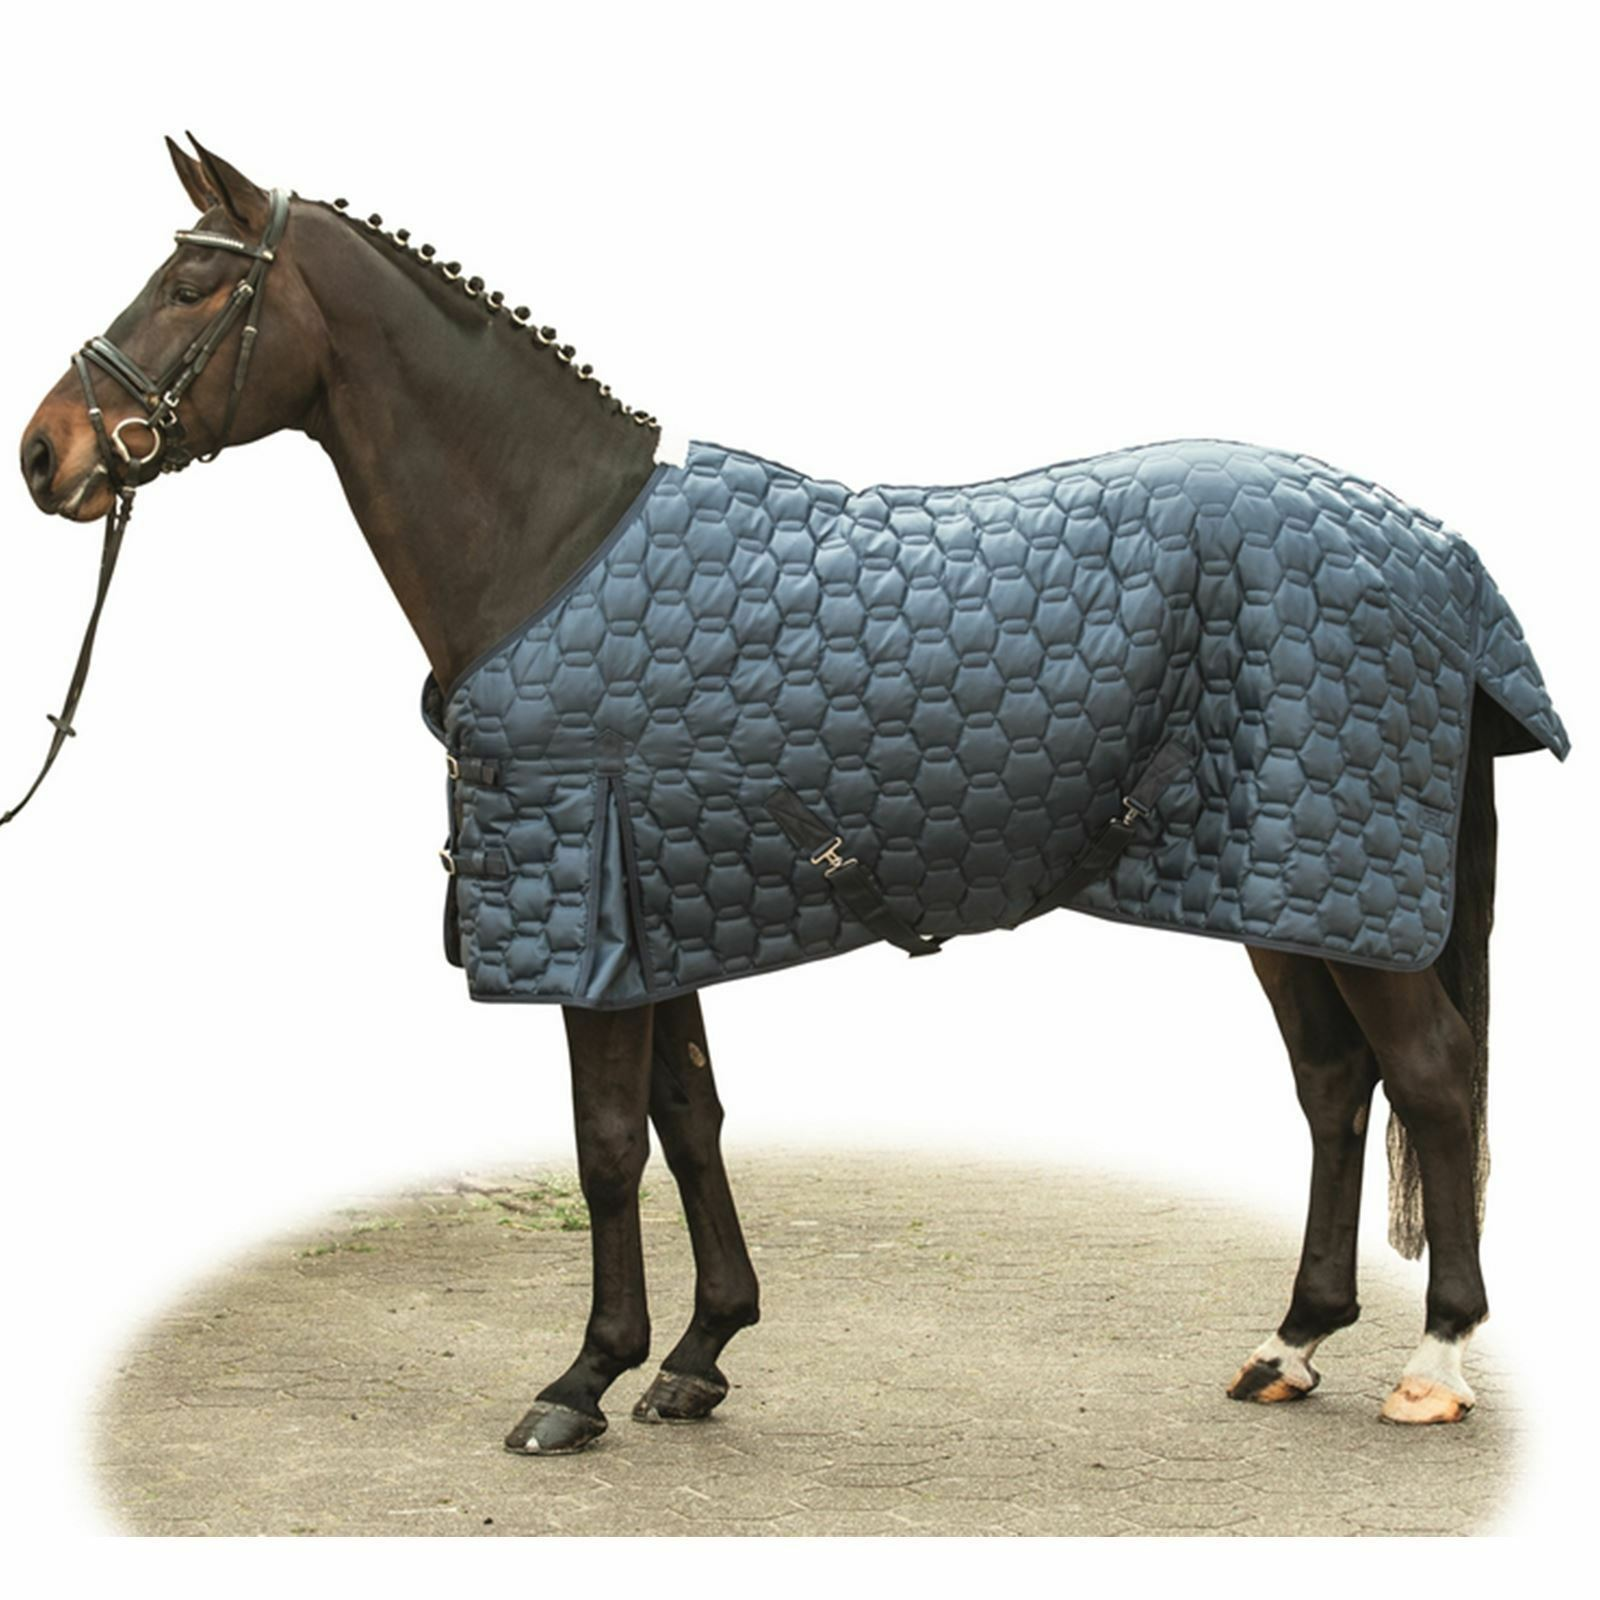 HKM hiver Tapis stable 420d polyester souple Entretien facile cheval predection